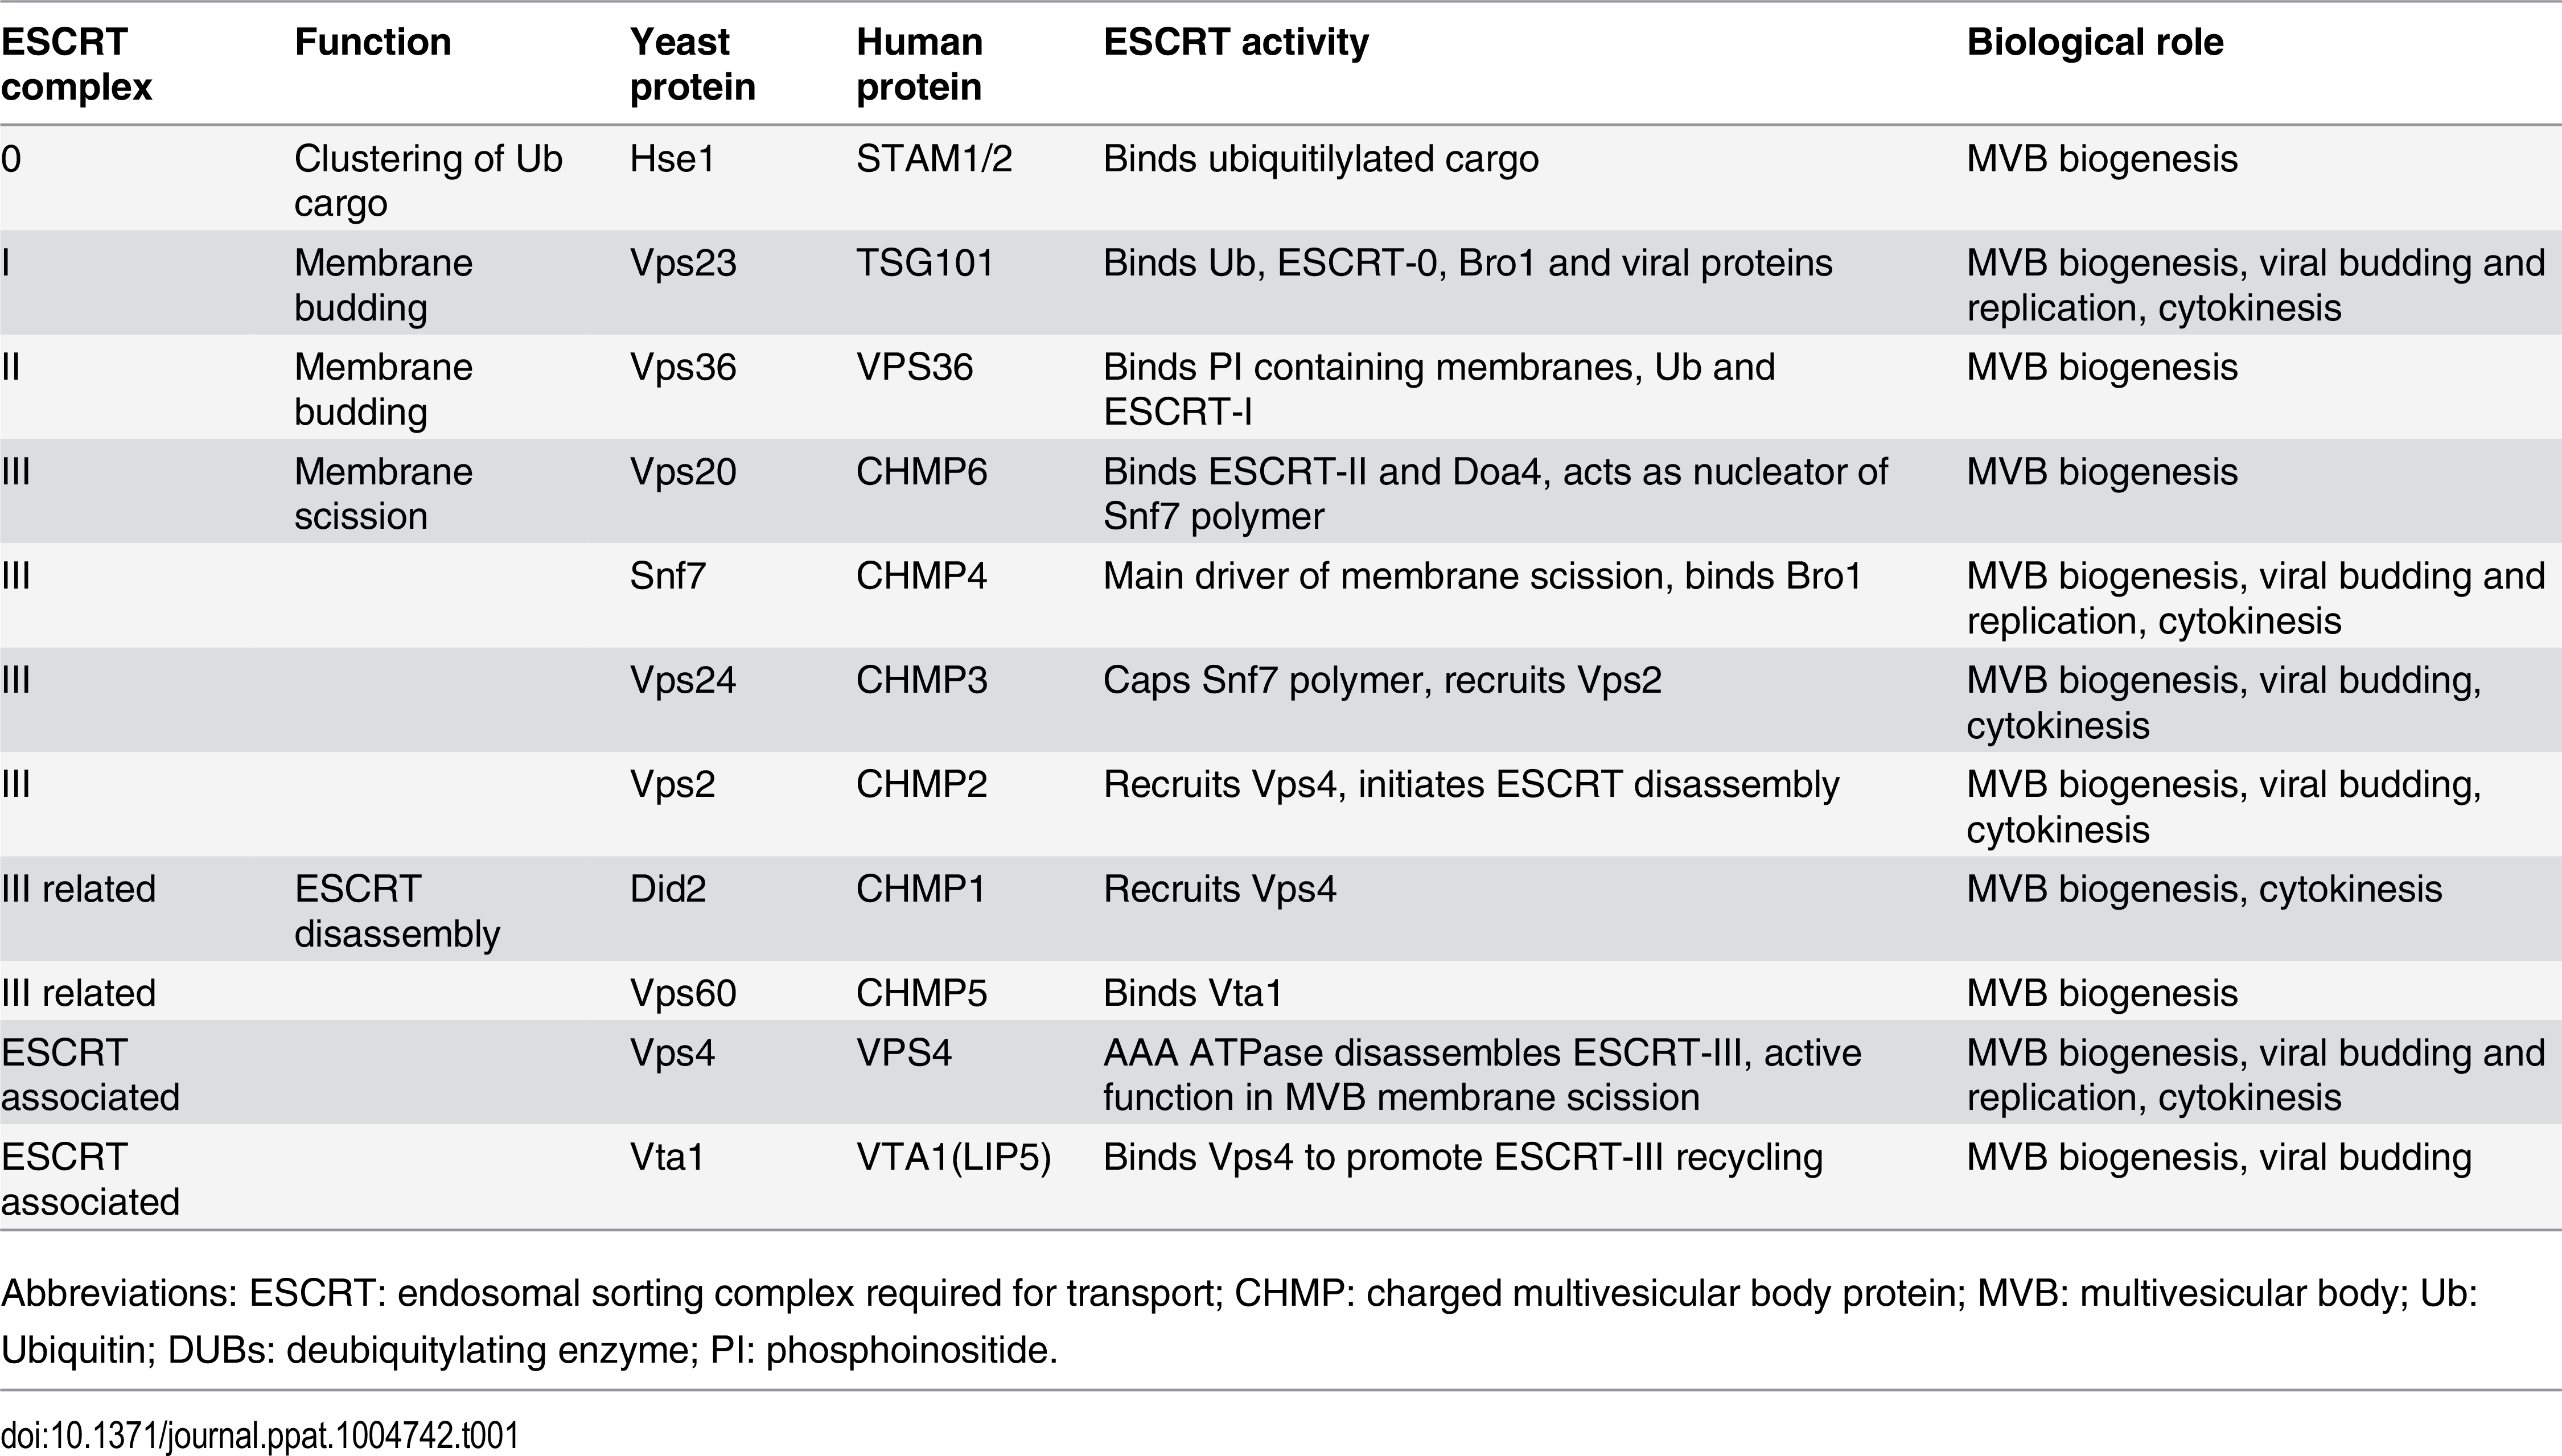 ESCRT subunits and associated proteins.